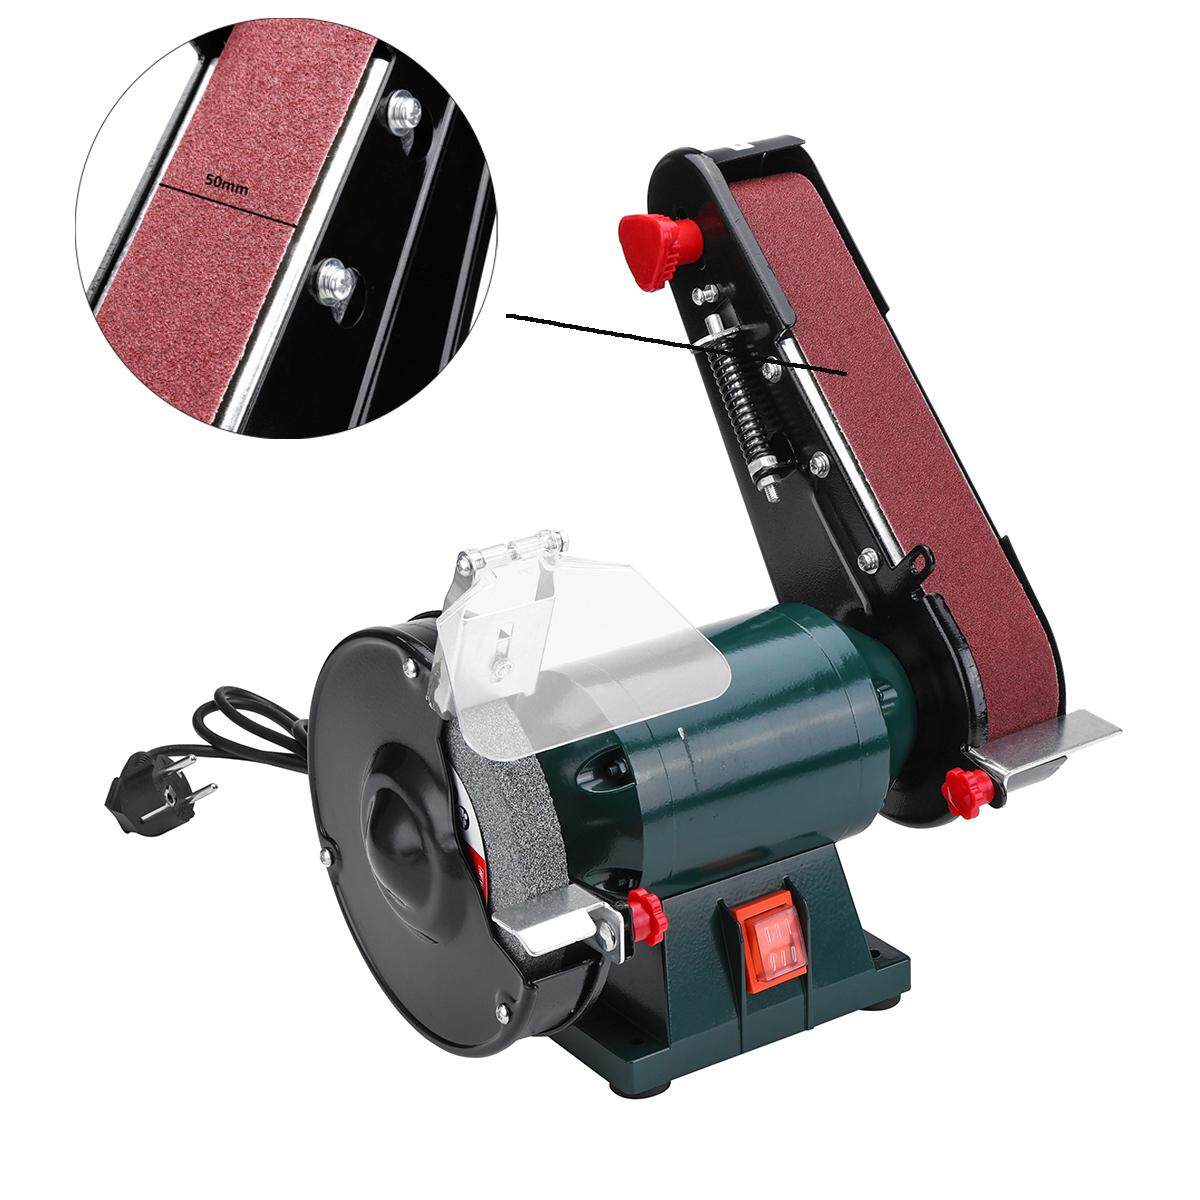 【Free Shipping + Super Deal + Limited Offer】6 150mm Bench Grinder Belt Sander Sharpener Linisher Sanding Grinding Machine